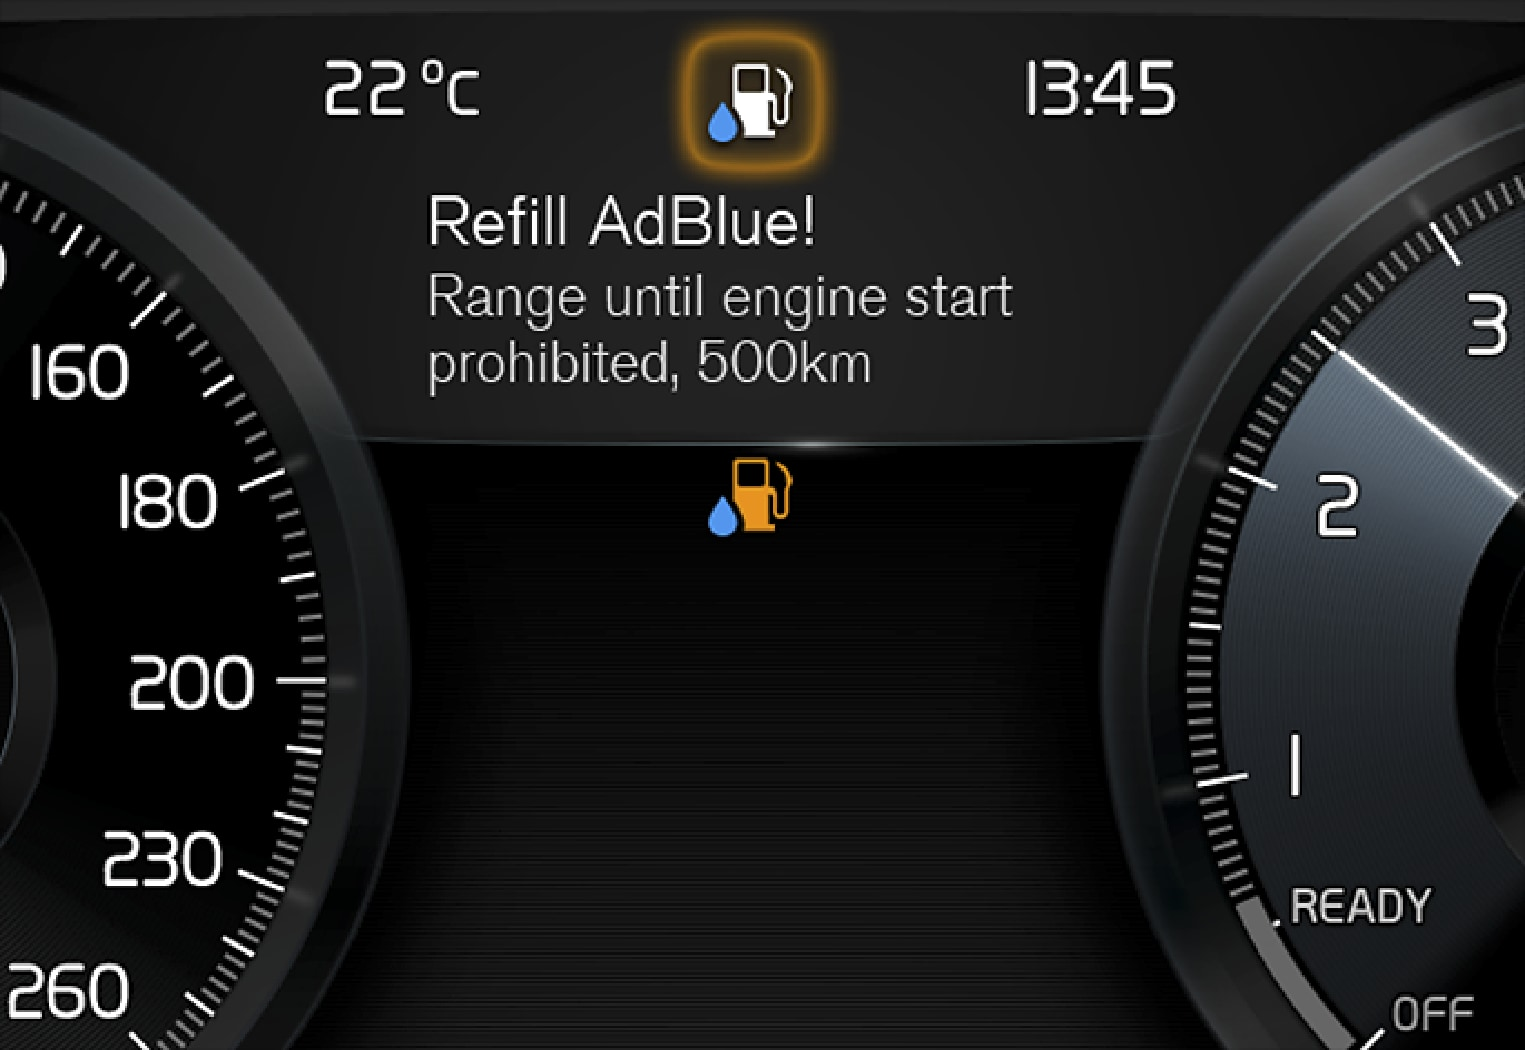 P5-XC60-1746-Adblue messages in driver display